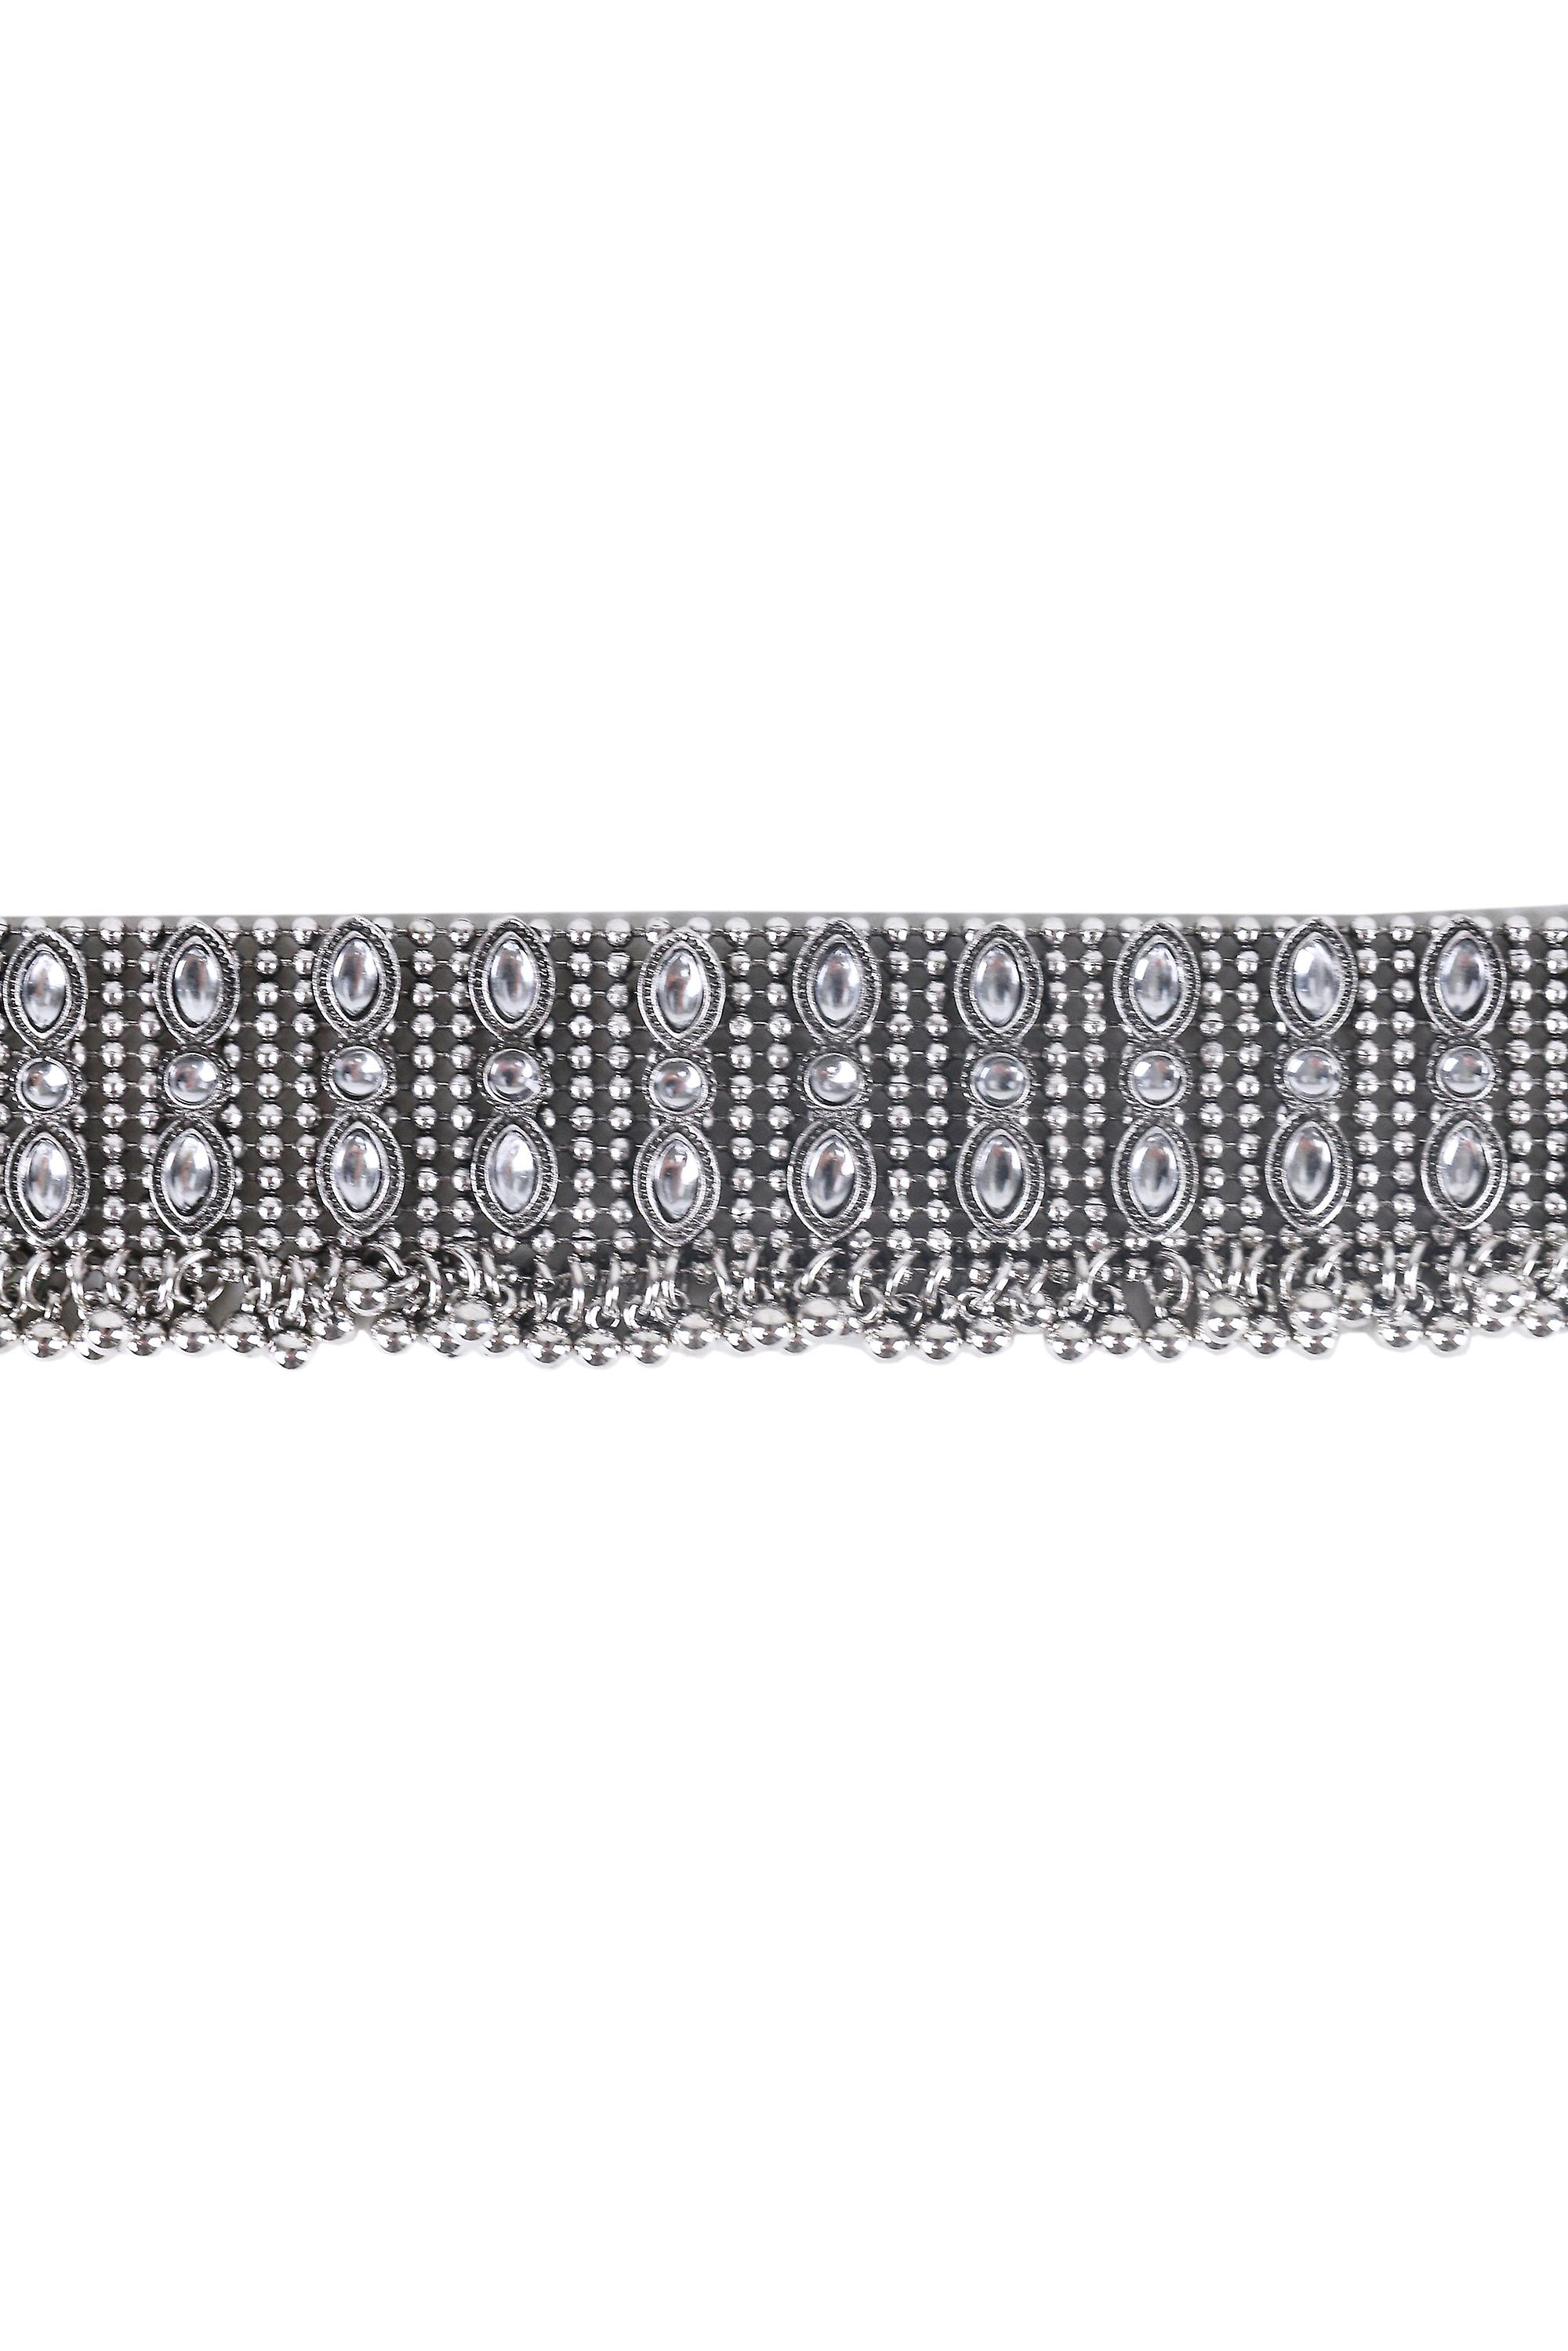 Lovemystyle Thick Silver Beaded Choker Necklace